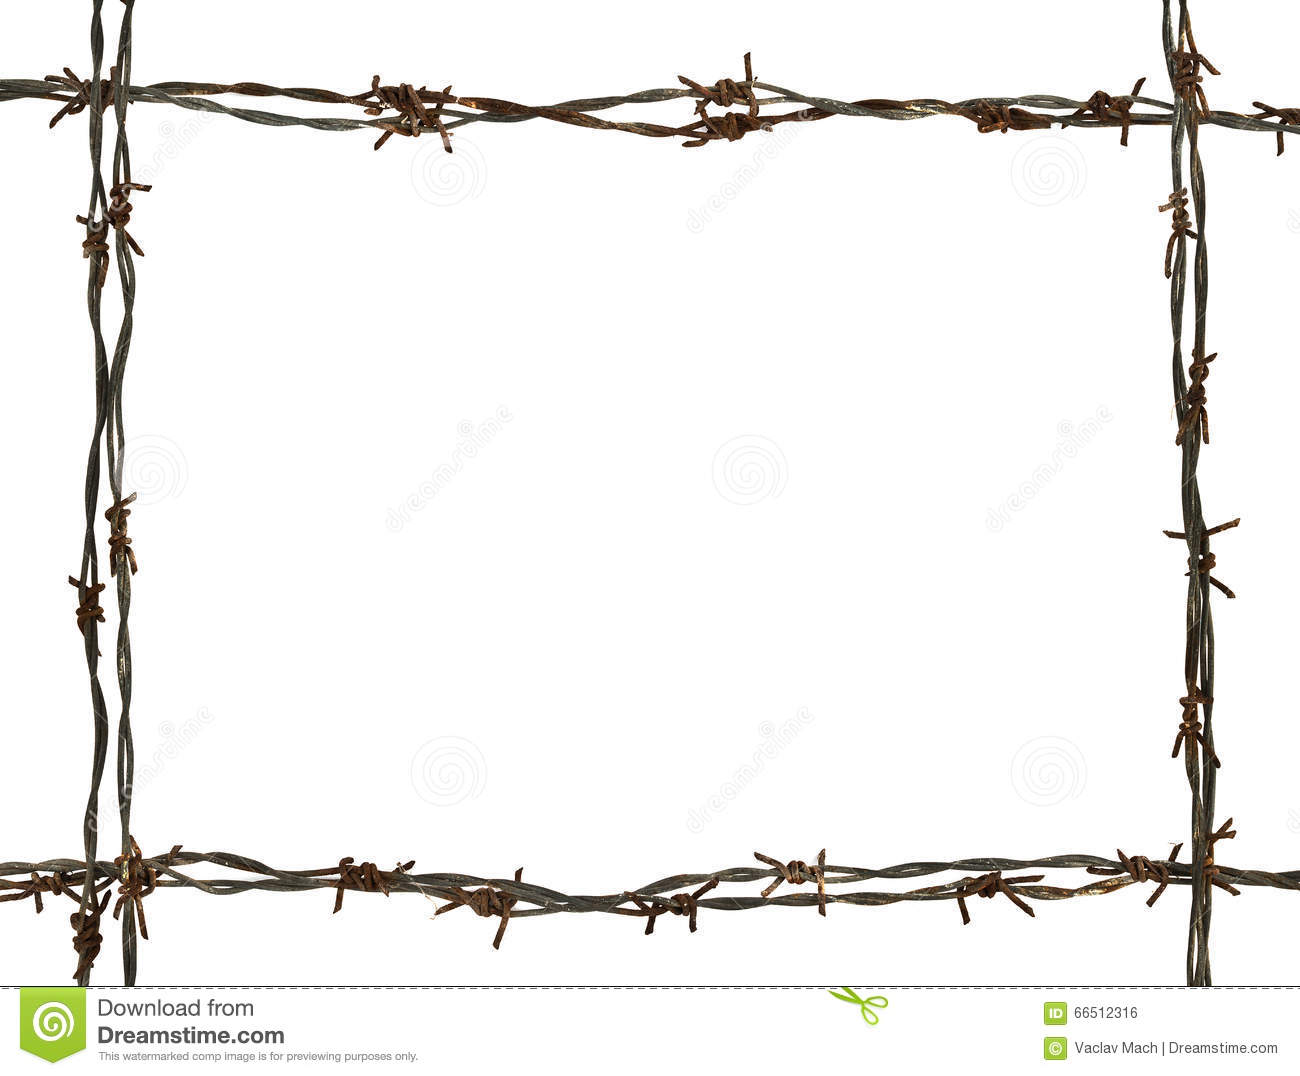 Barbed wire frame royalty free stock photography